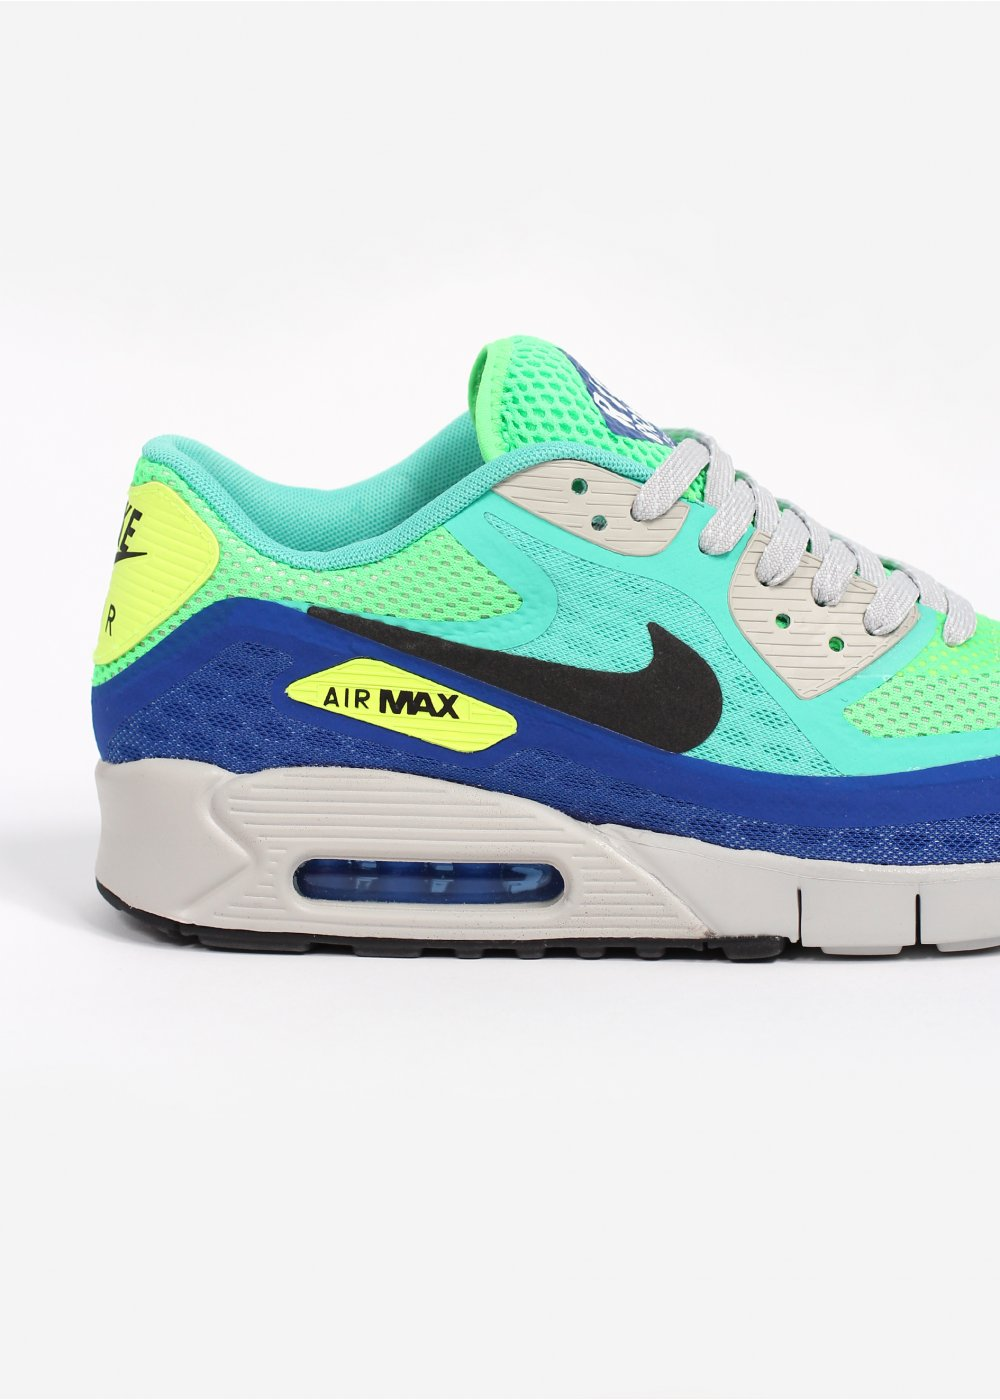 Nike Air Max 90 Breathe City Pack QS Rio Crystal Mint Hyper Blue